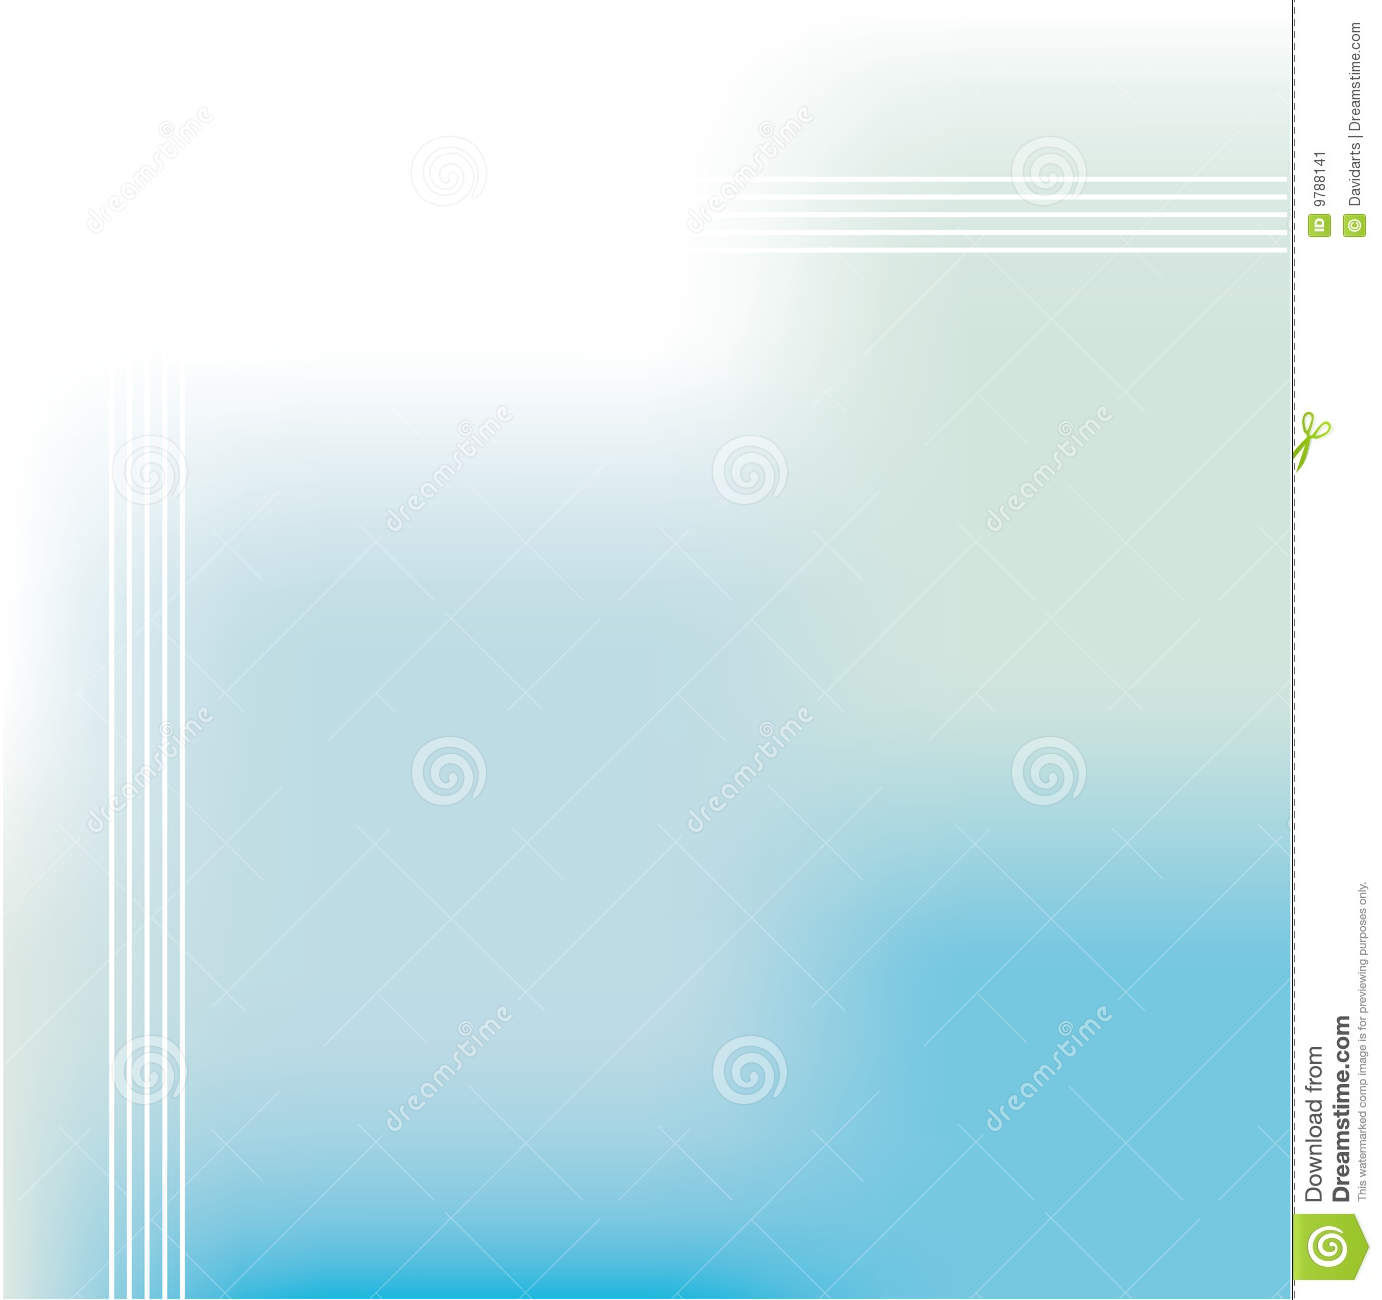 Background For Depliant Or Business Brochure Stock Image - Image ...